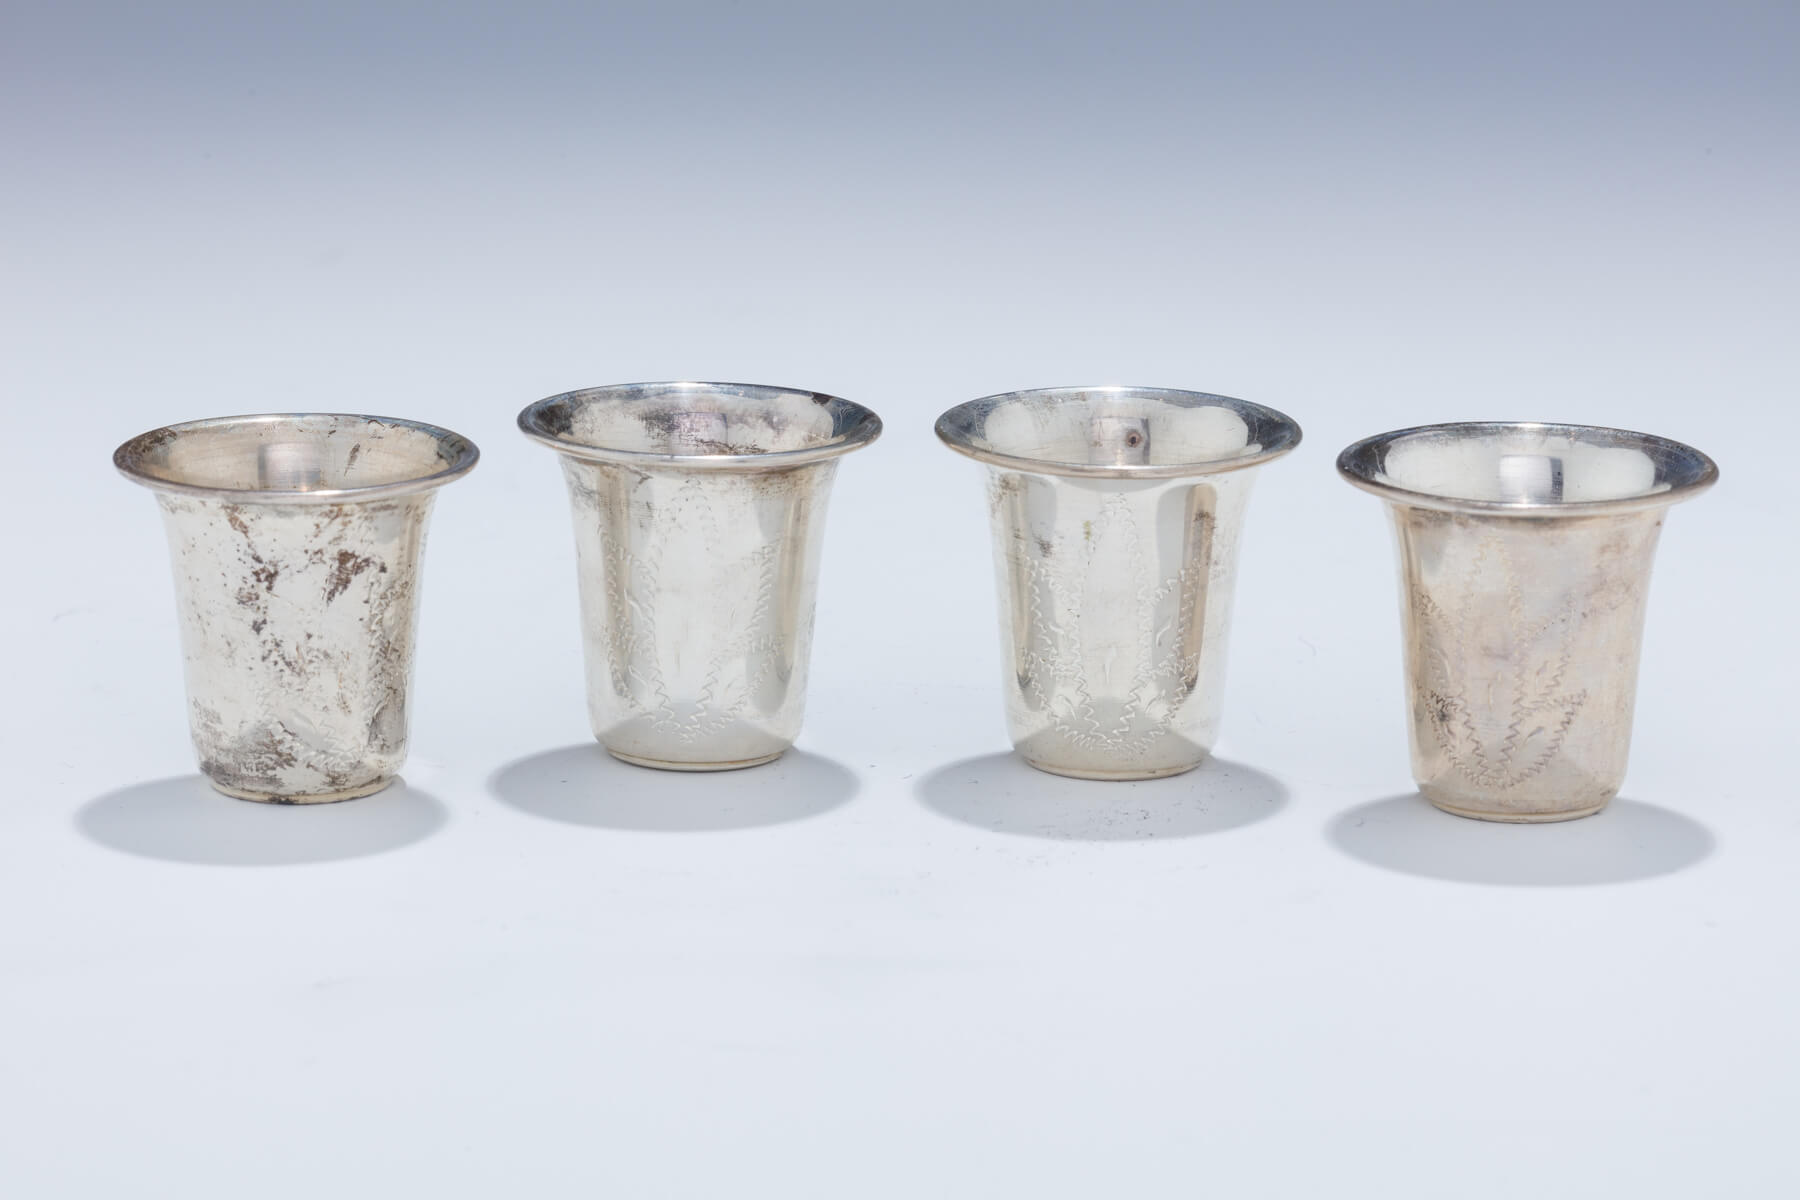 162. Four Sterling Kiddush Beakers Formerly Belonging to Rabbi Shlomo Carlebach